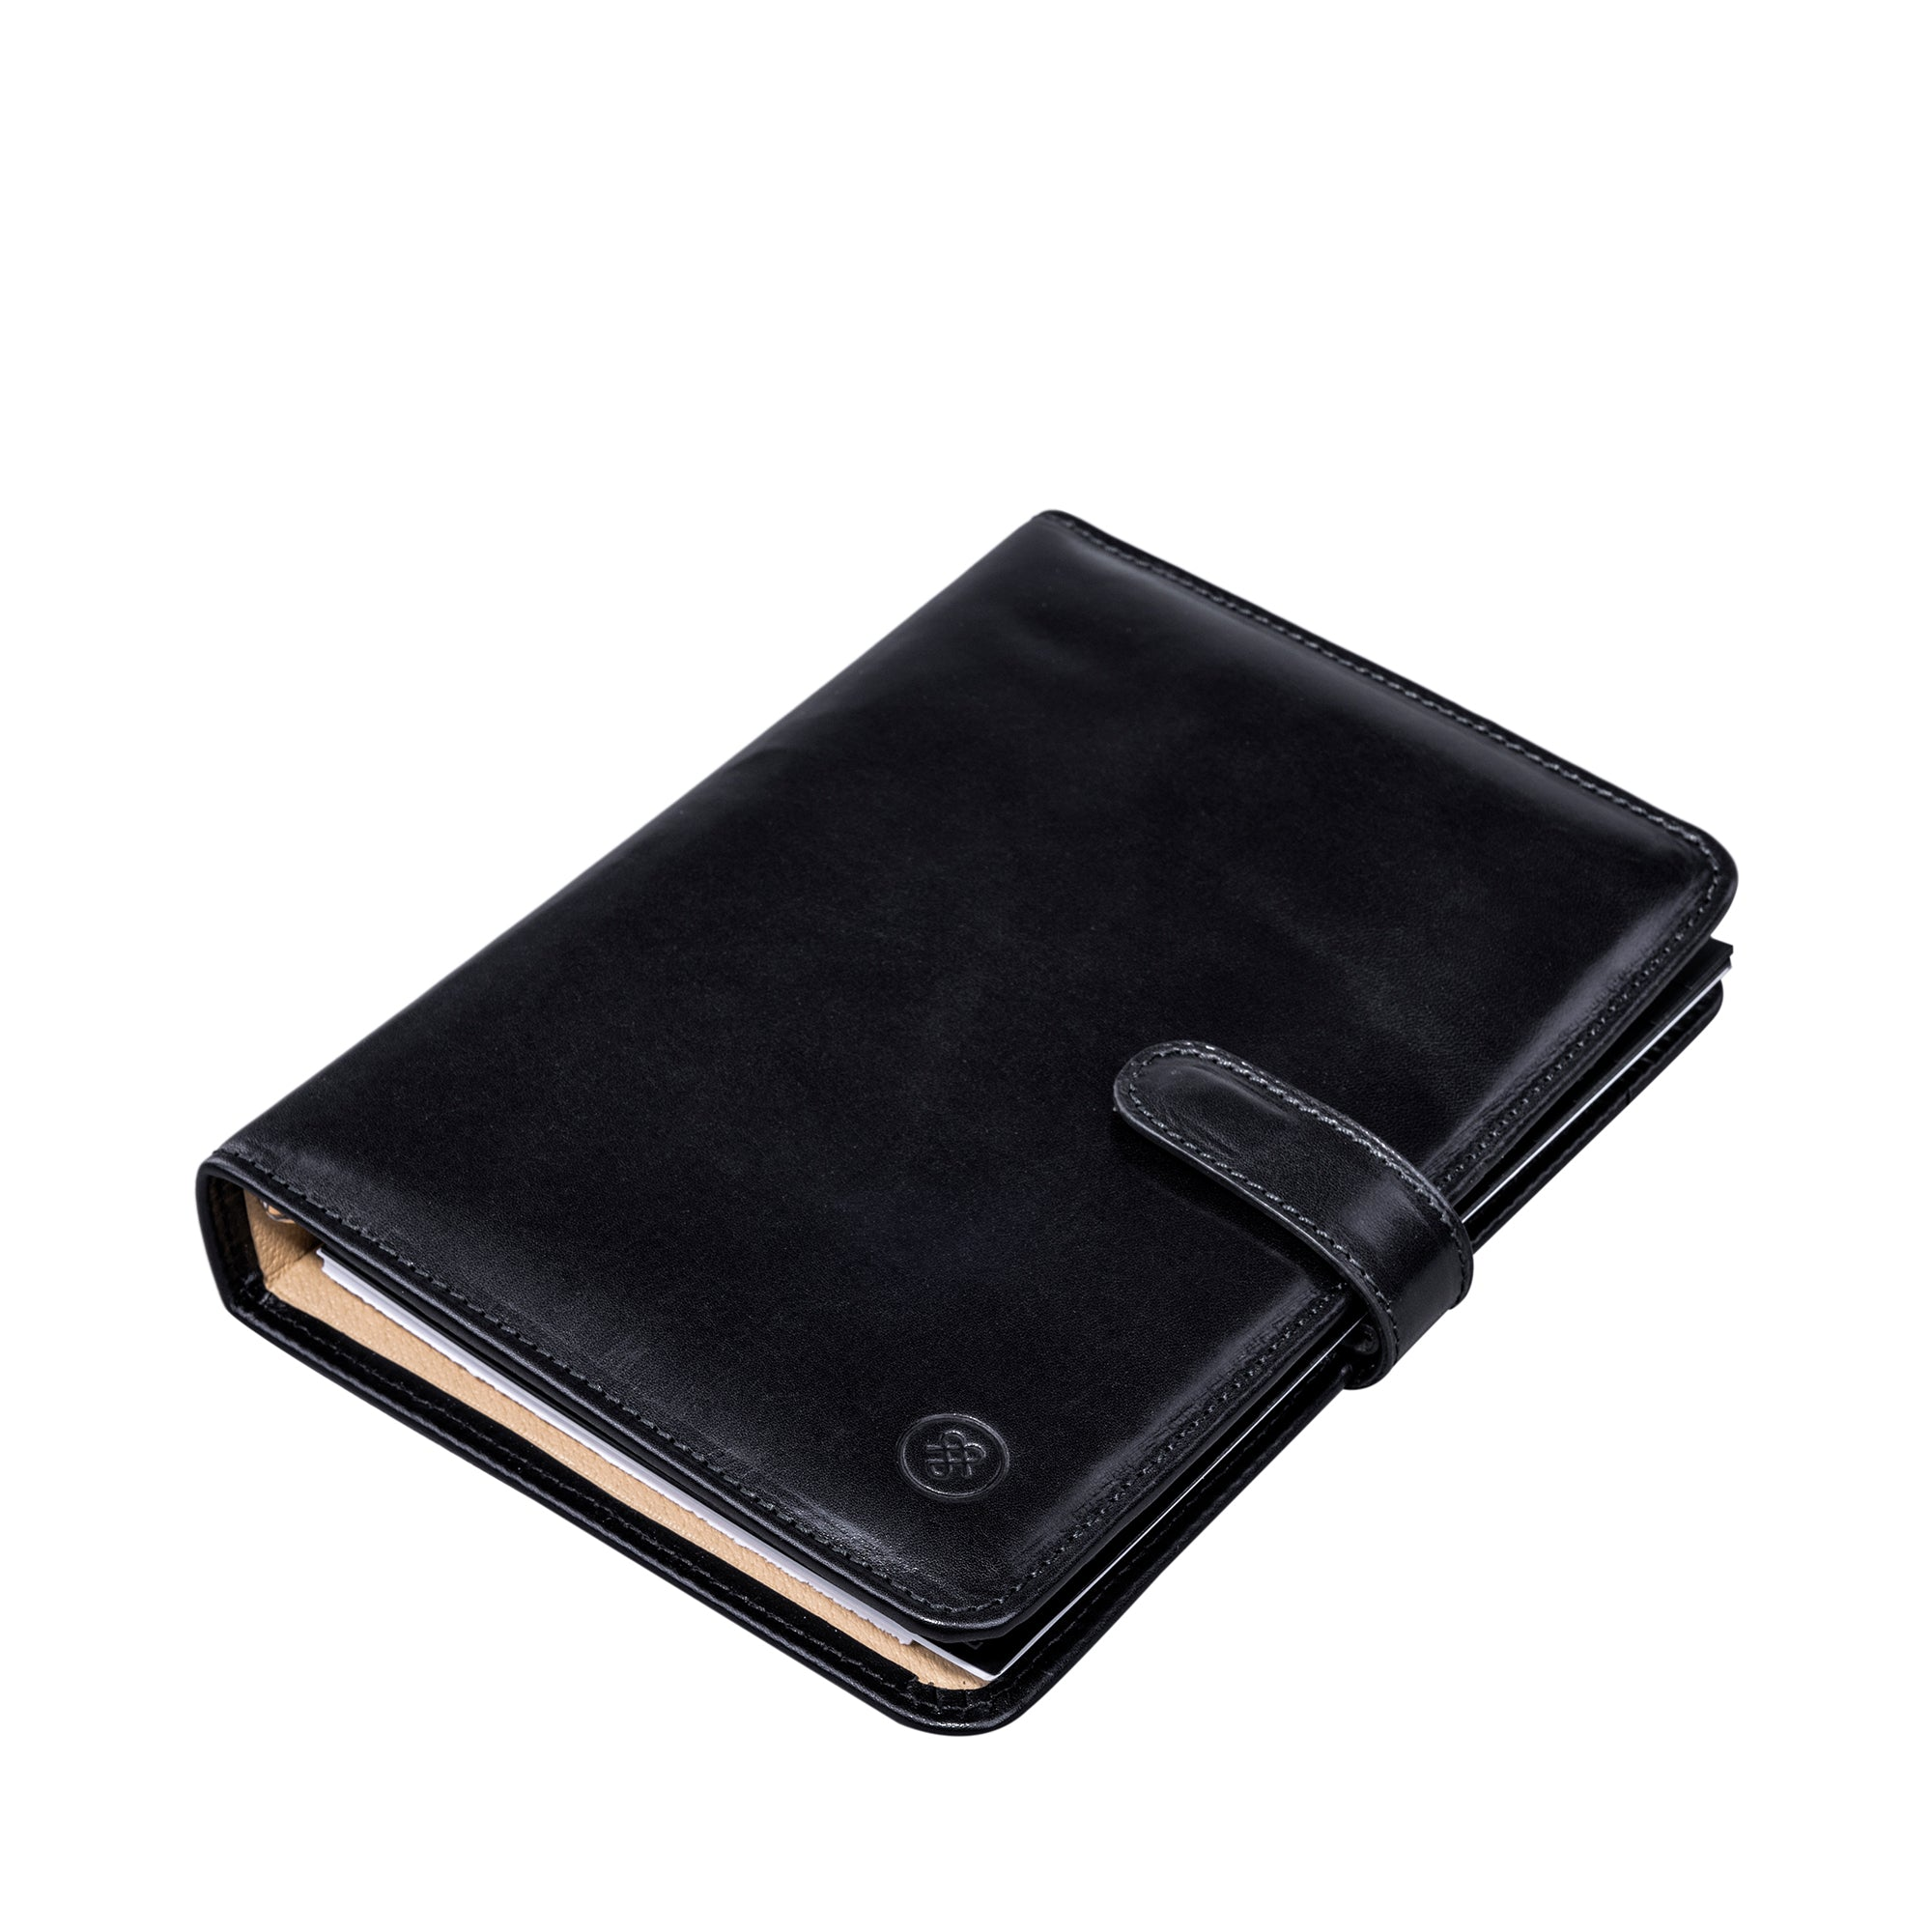 Image 3 of the Black Leather Address Book